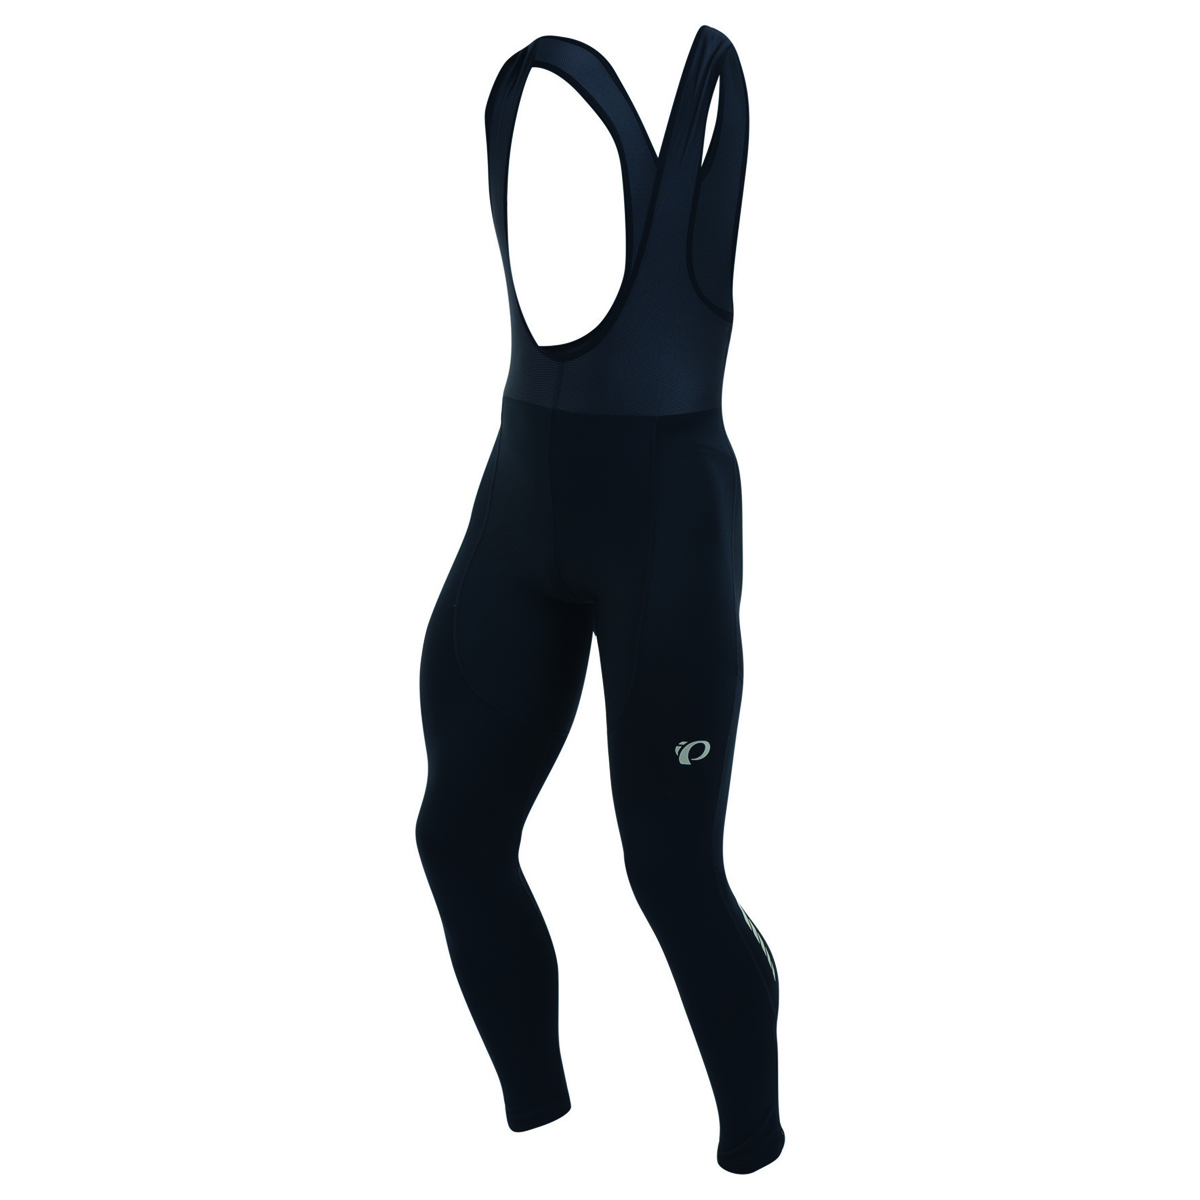 Pearl Izumi Rajtuzy Thermal Select Szelki Kolor Czarny XL